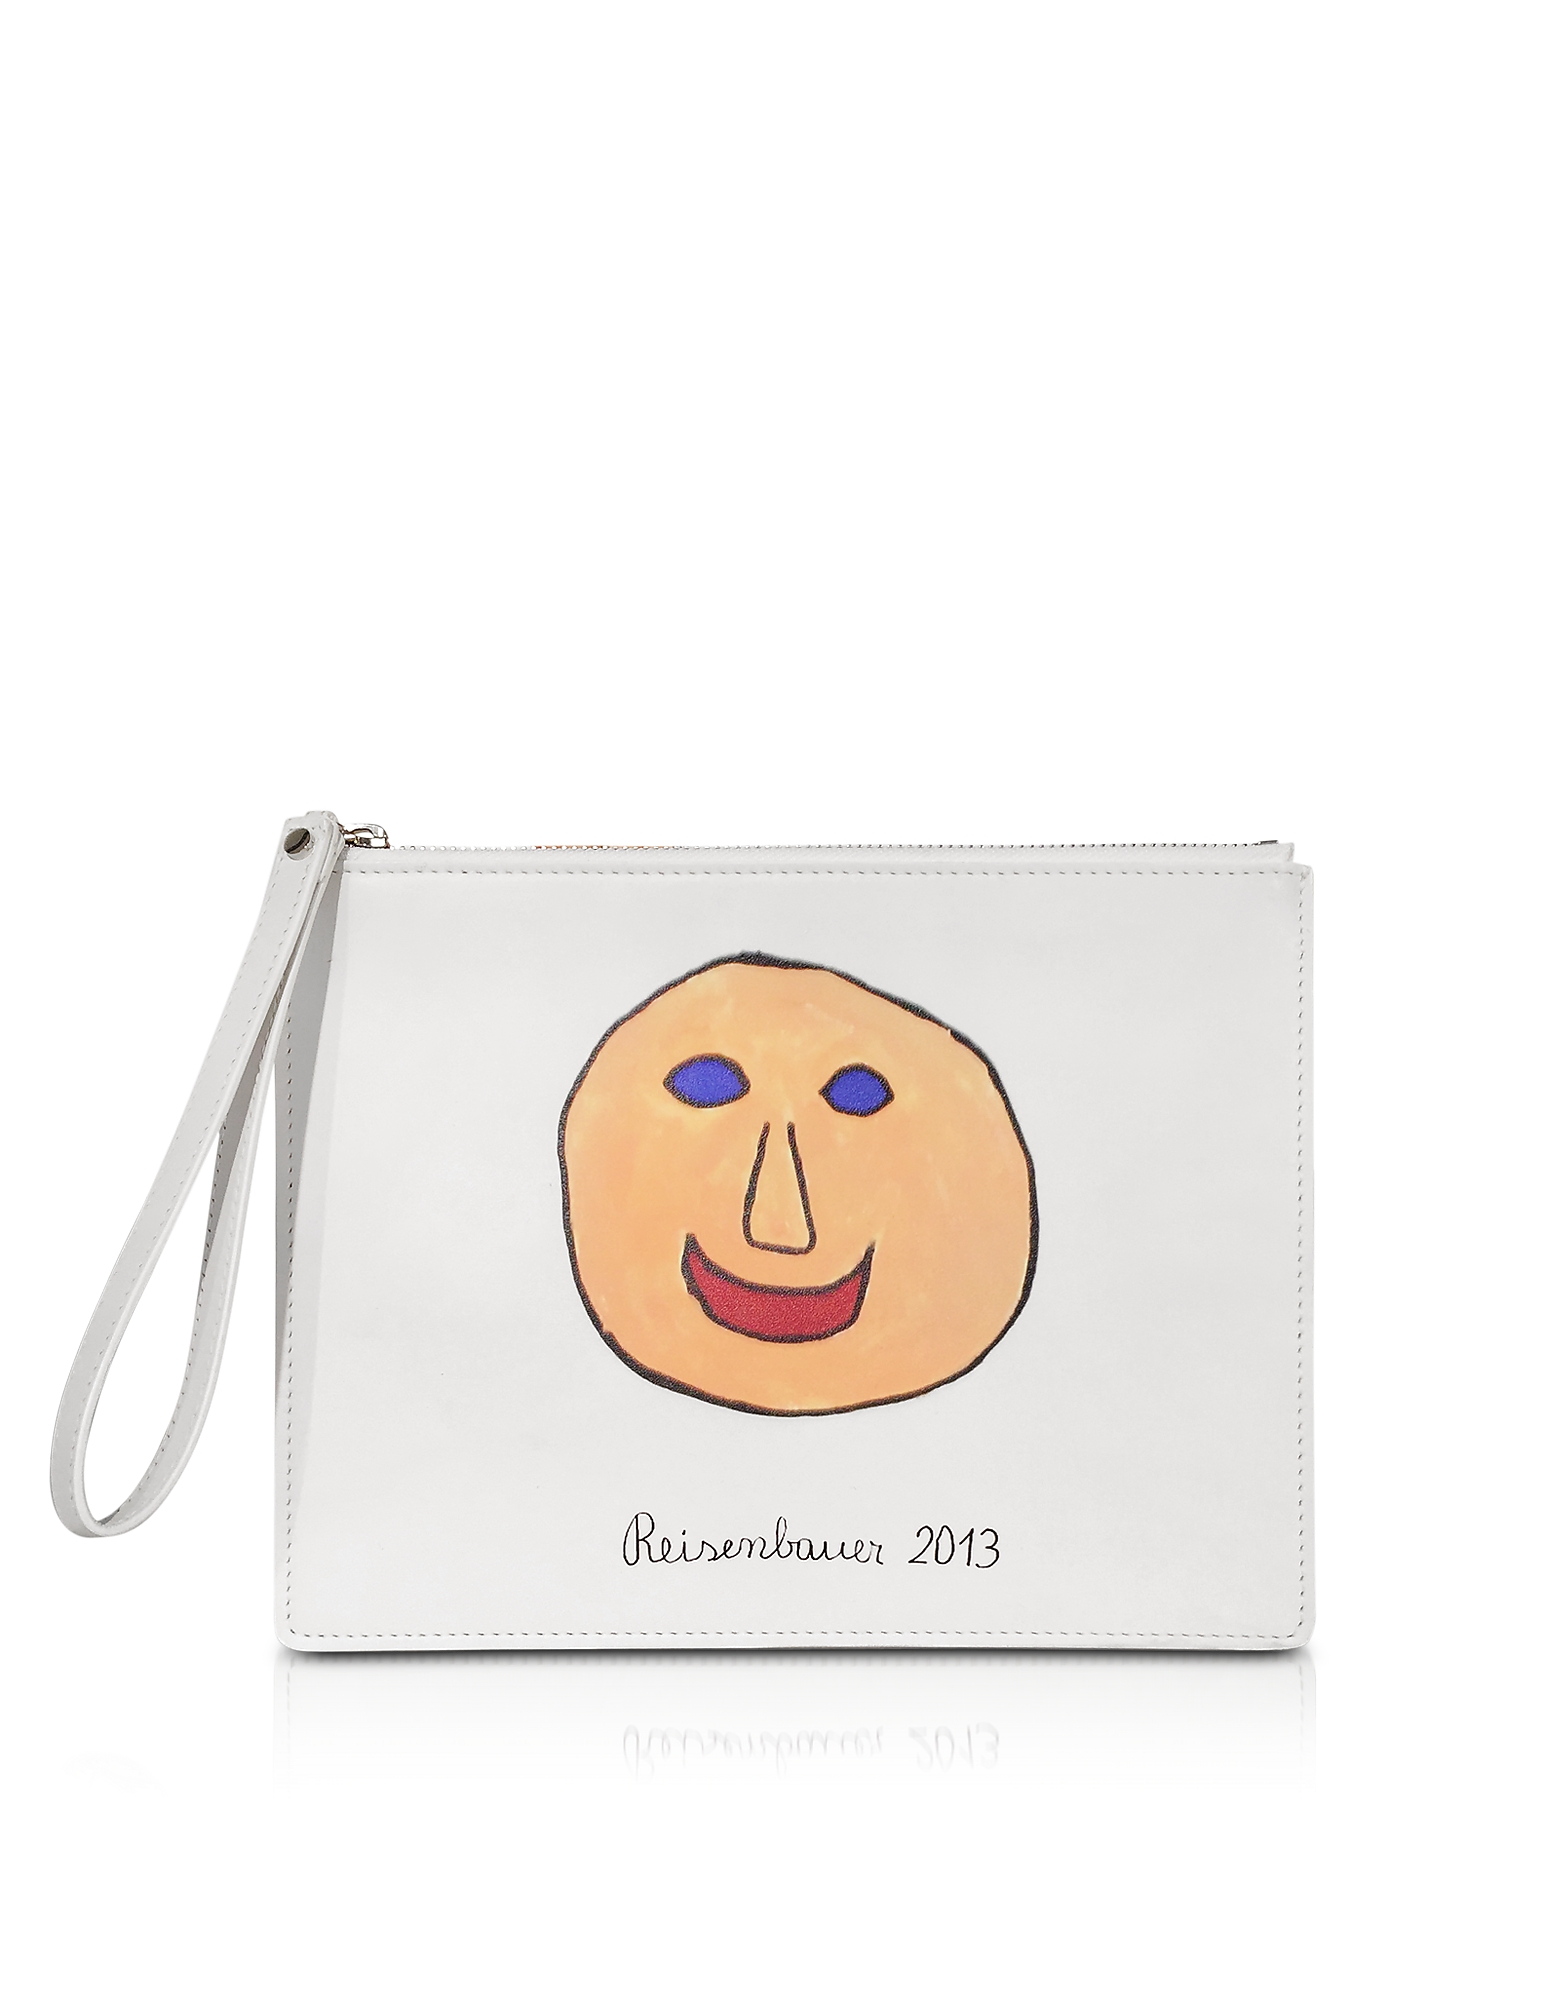 Christopher Kane Handbags, Gugging Smile Art White Leather Clutch